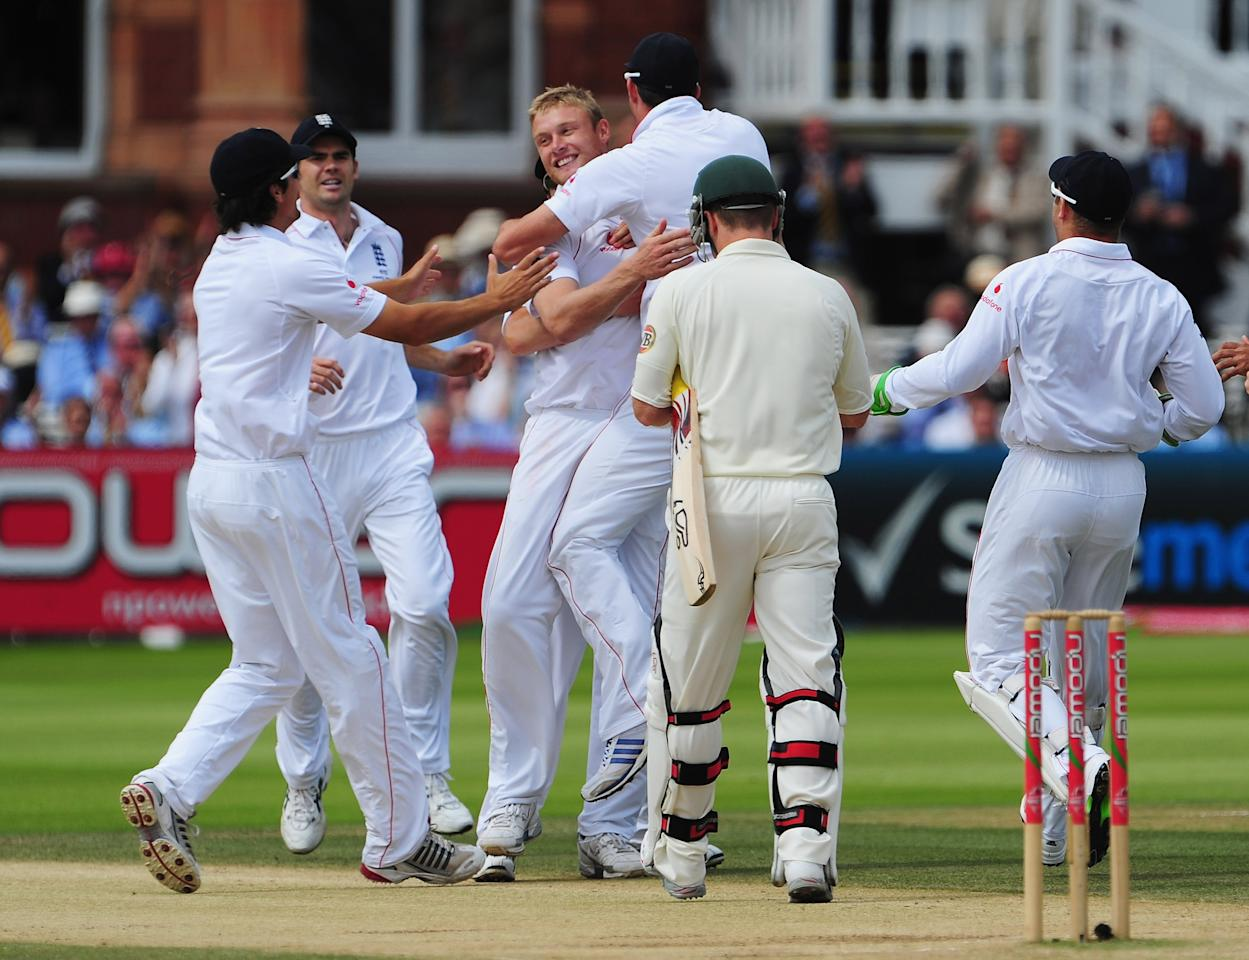 LONDON - JULY 20: Andrew Flintoff of England celebrates the wicket of Brad Haddin of Australia with team mates during day five of the npower 2nd Ashes Test Match between England and Australia at Lord's on July 20, 2009 in London, England.  (Photo by Mike Hewitt/Getty Images)